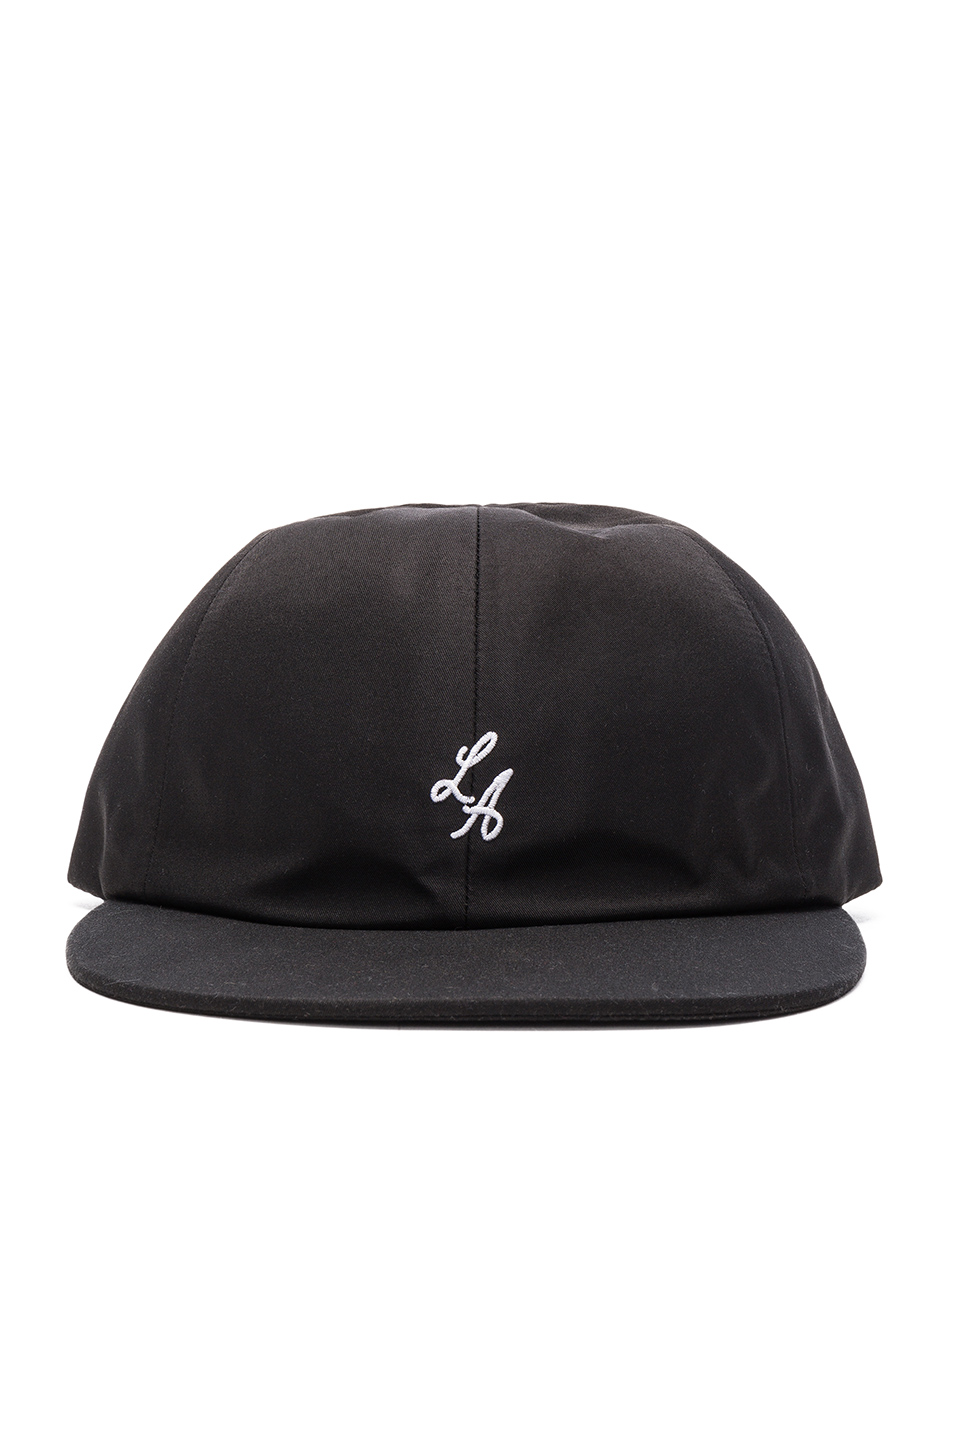 Stampd Lower LA Script Hat in Black